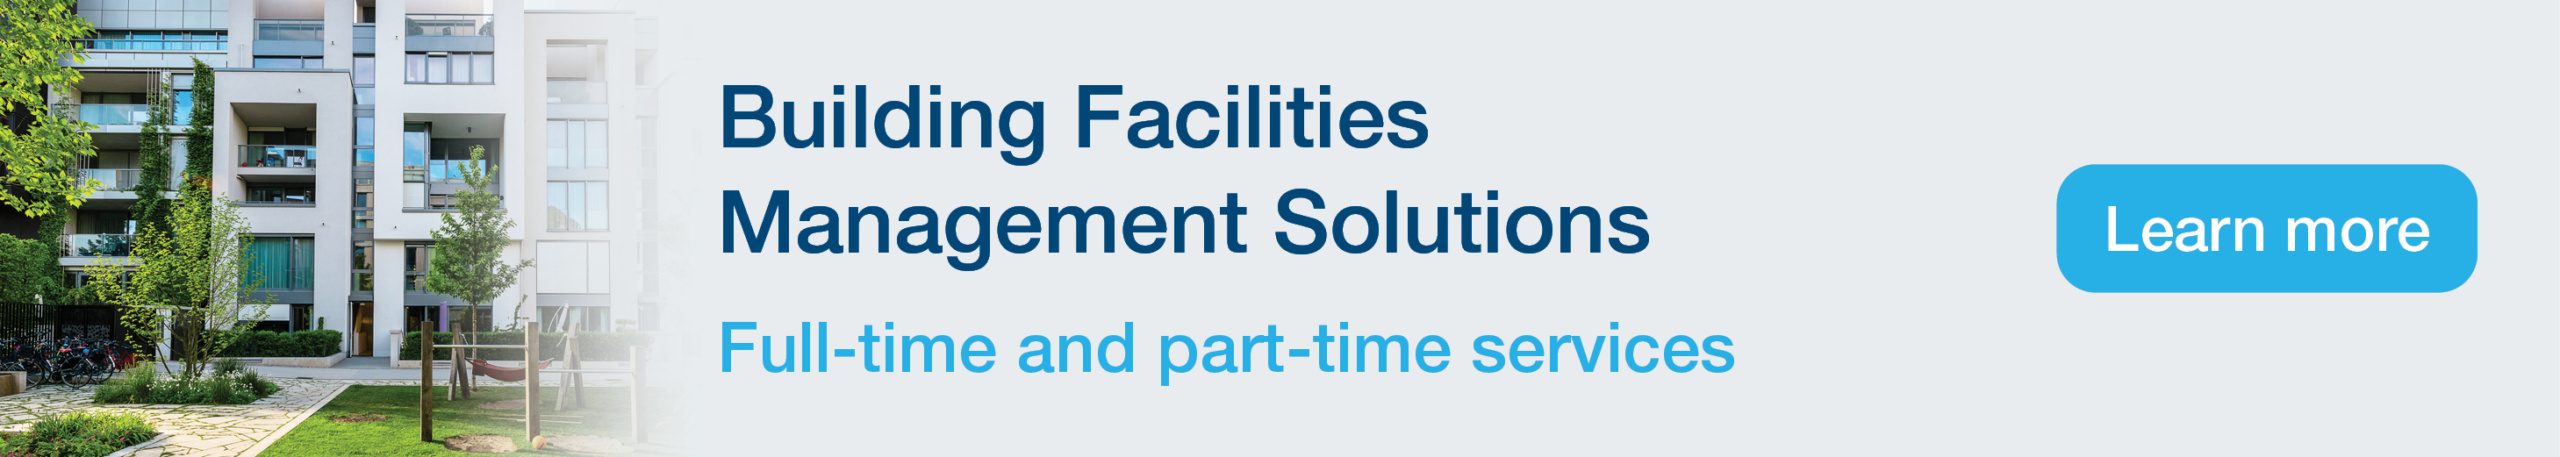 Building Facilities Management Solutions